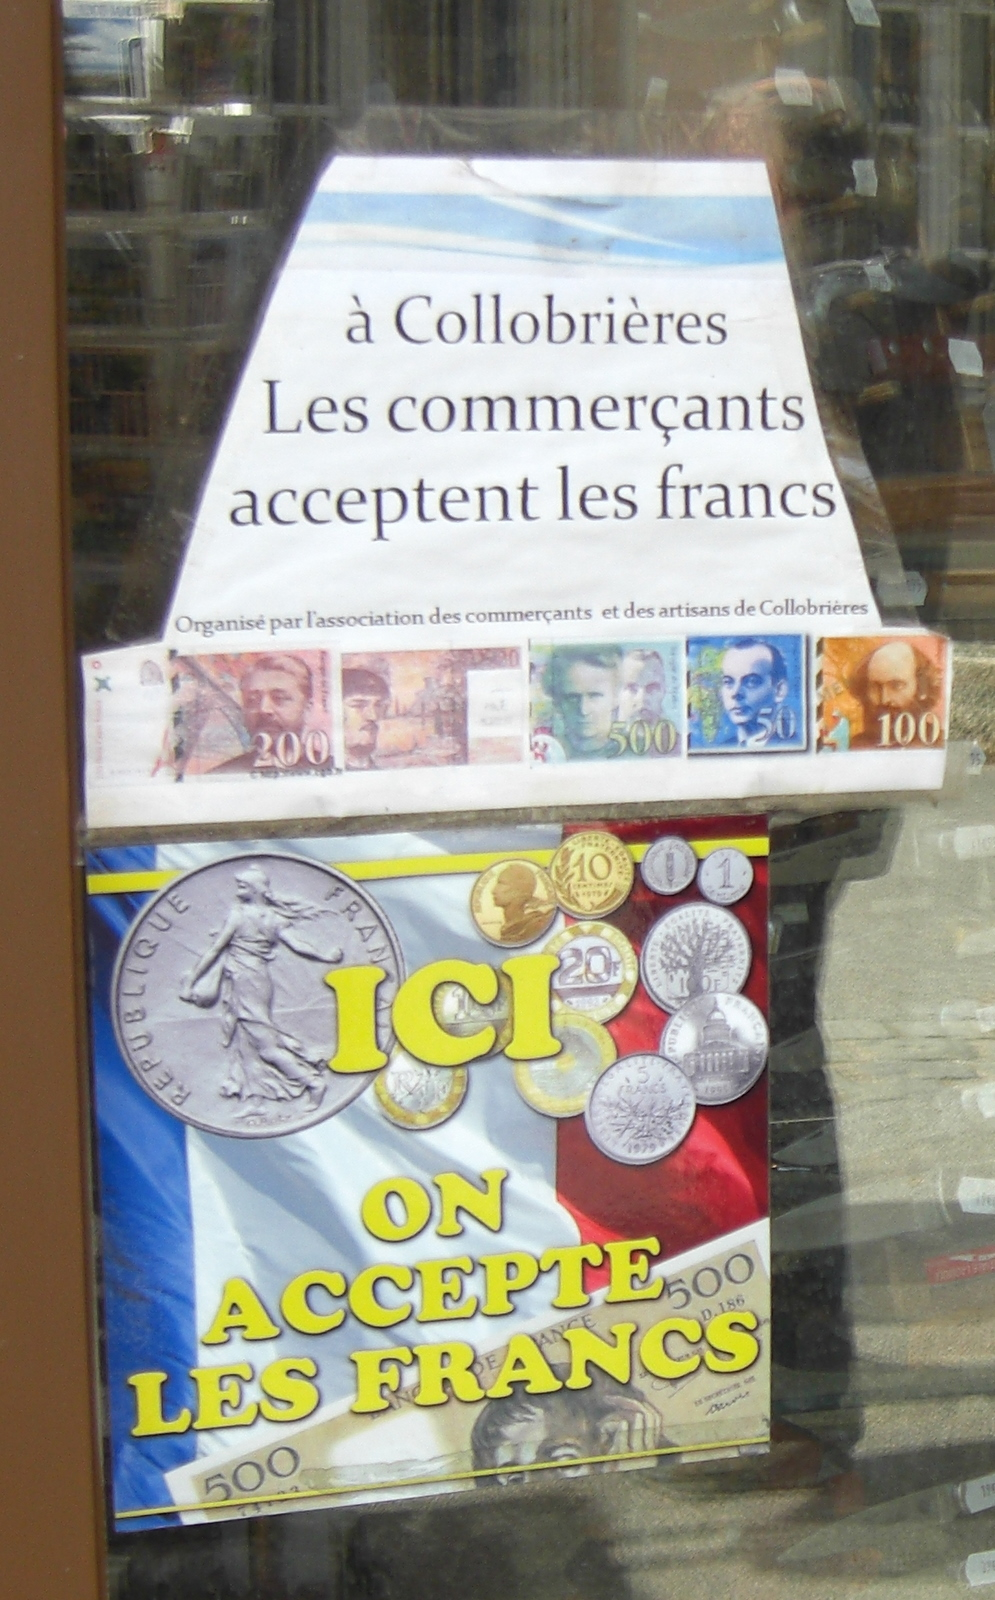 Still accepting Francs? What's that all about?